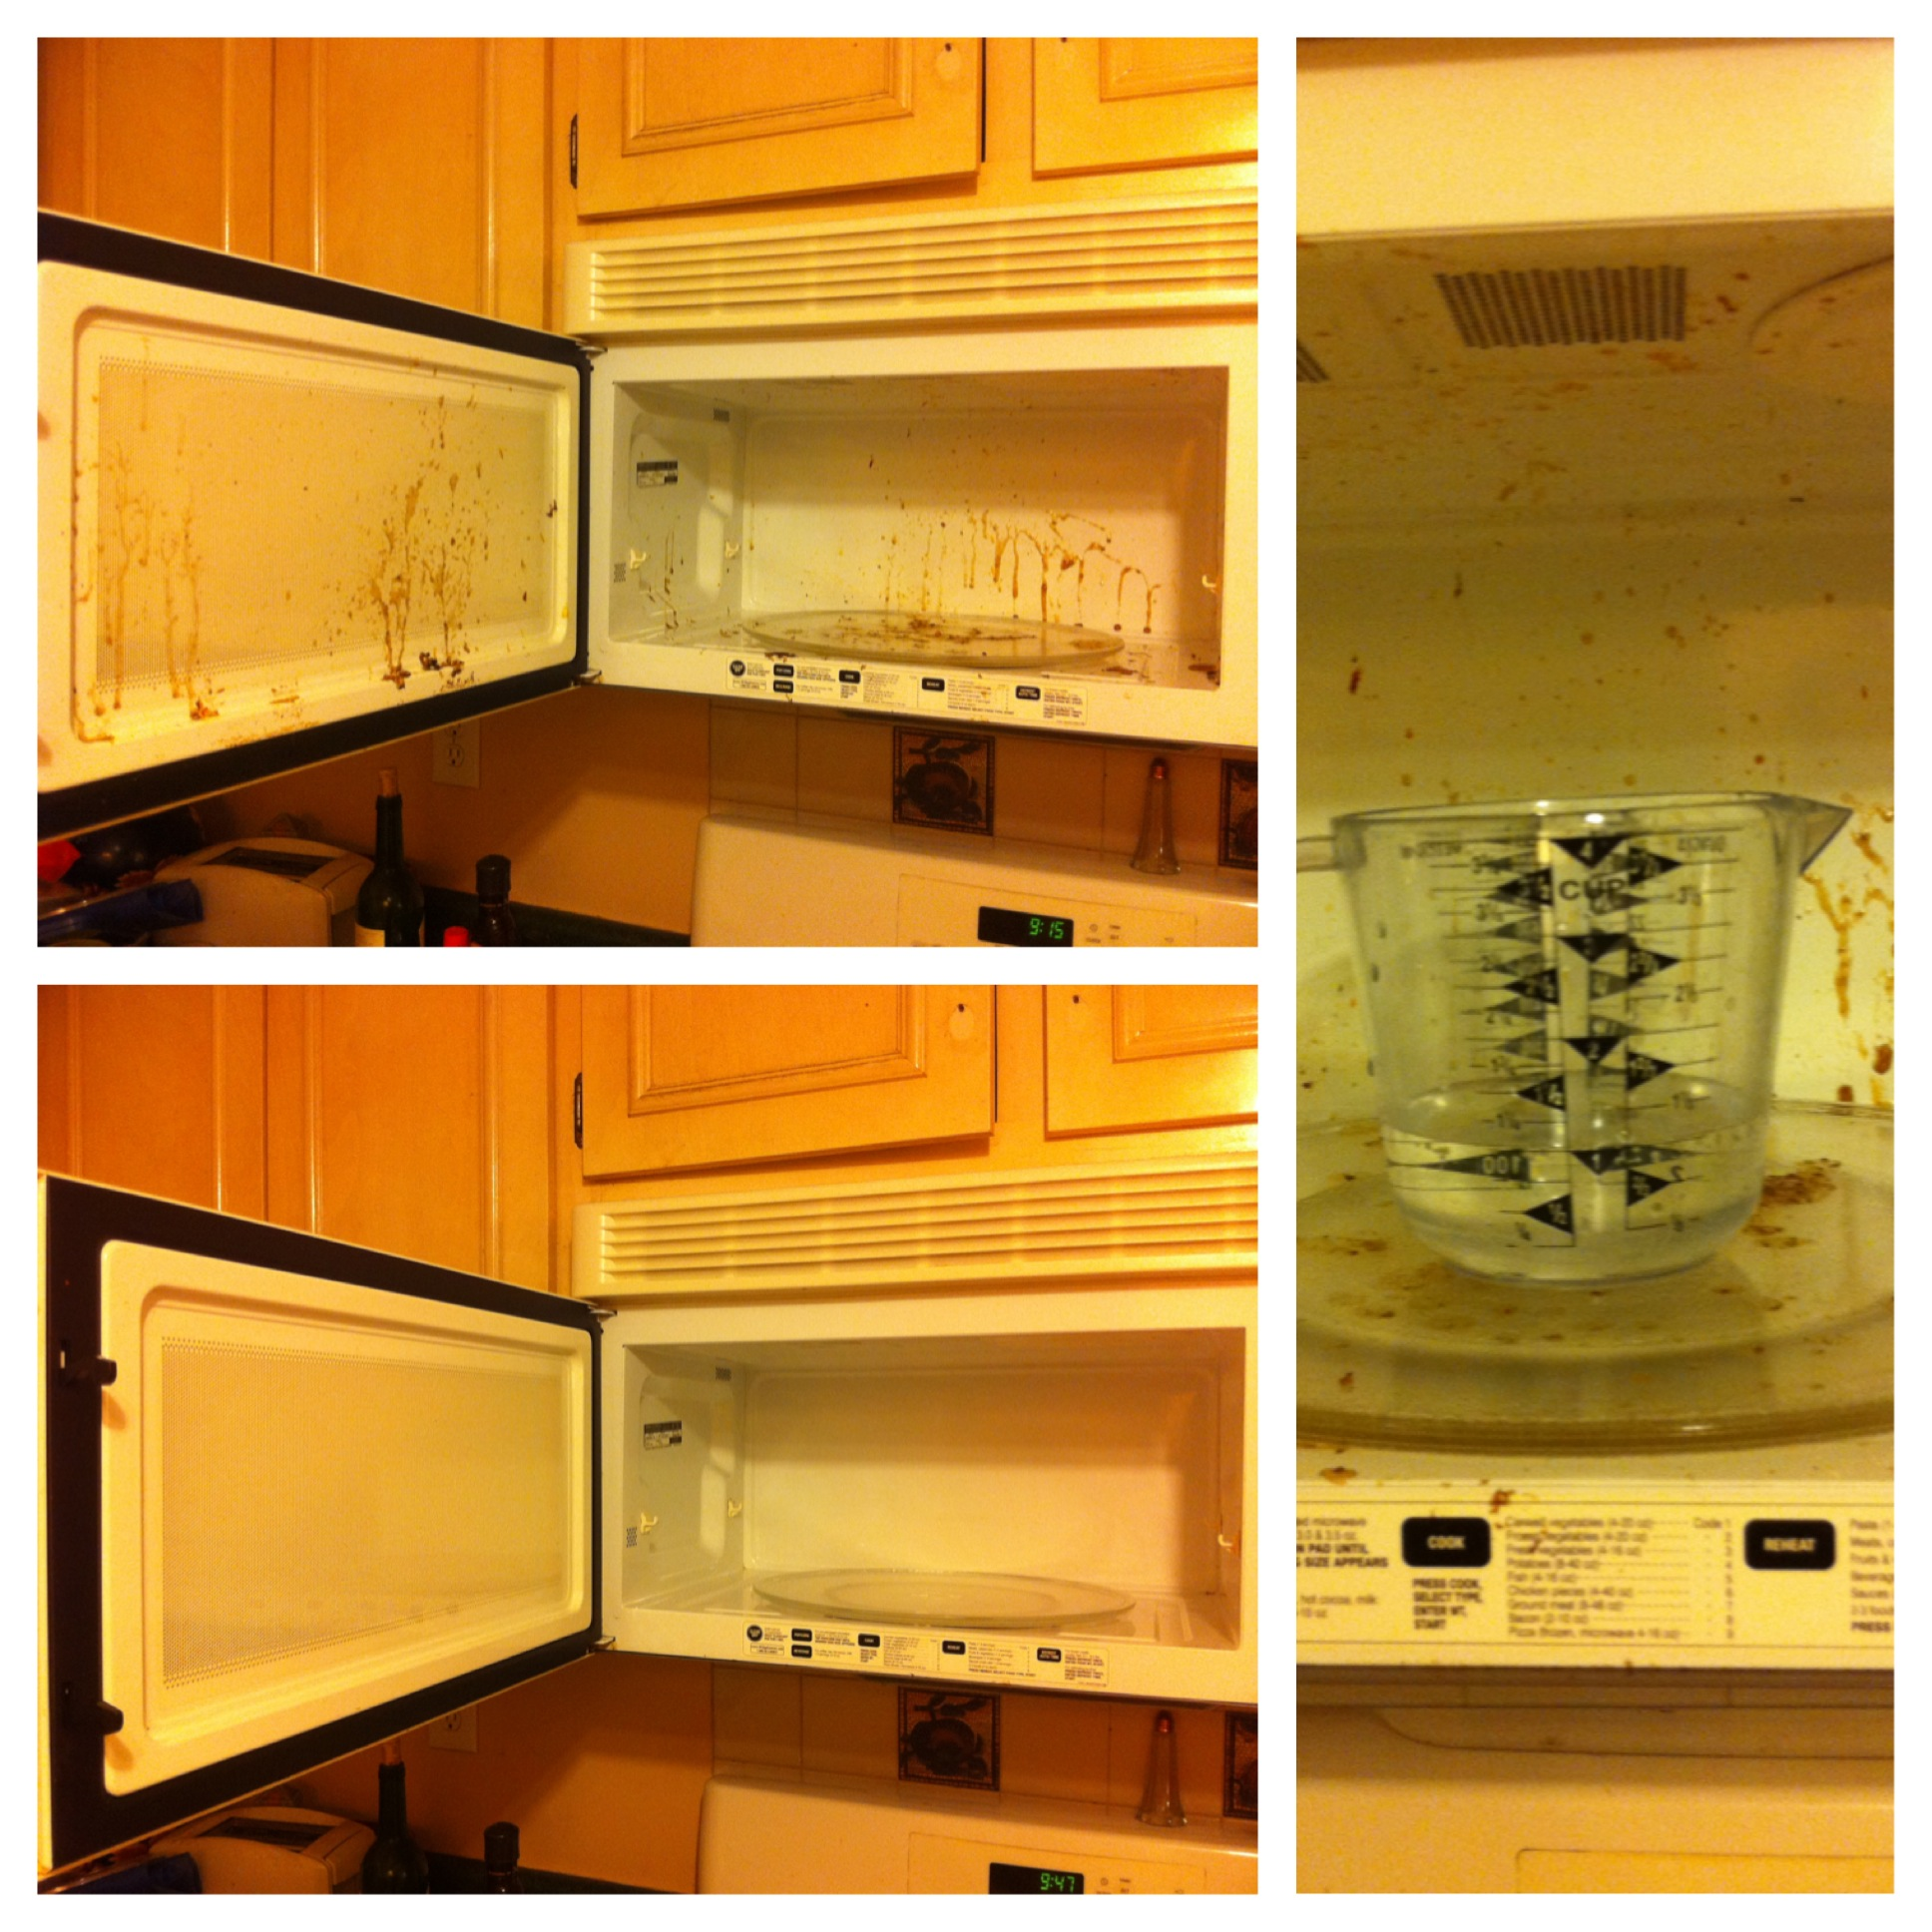 How to Easily Clean a Microwave Using Vinegar